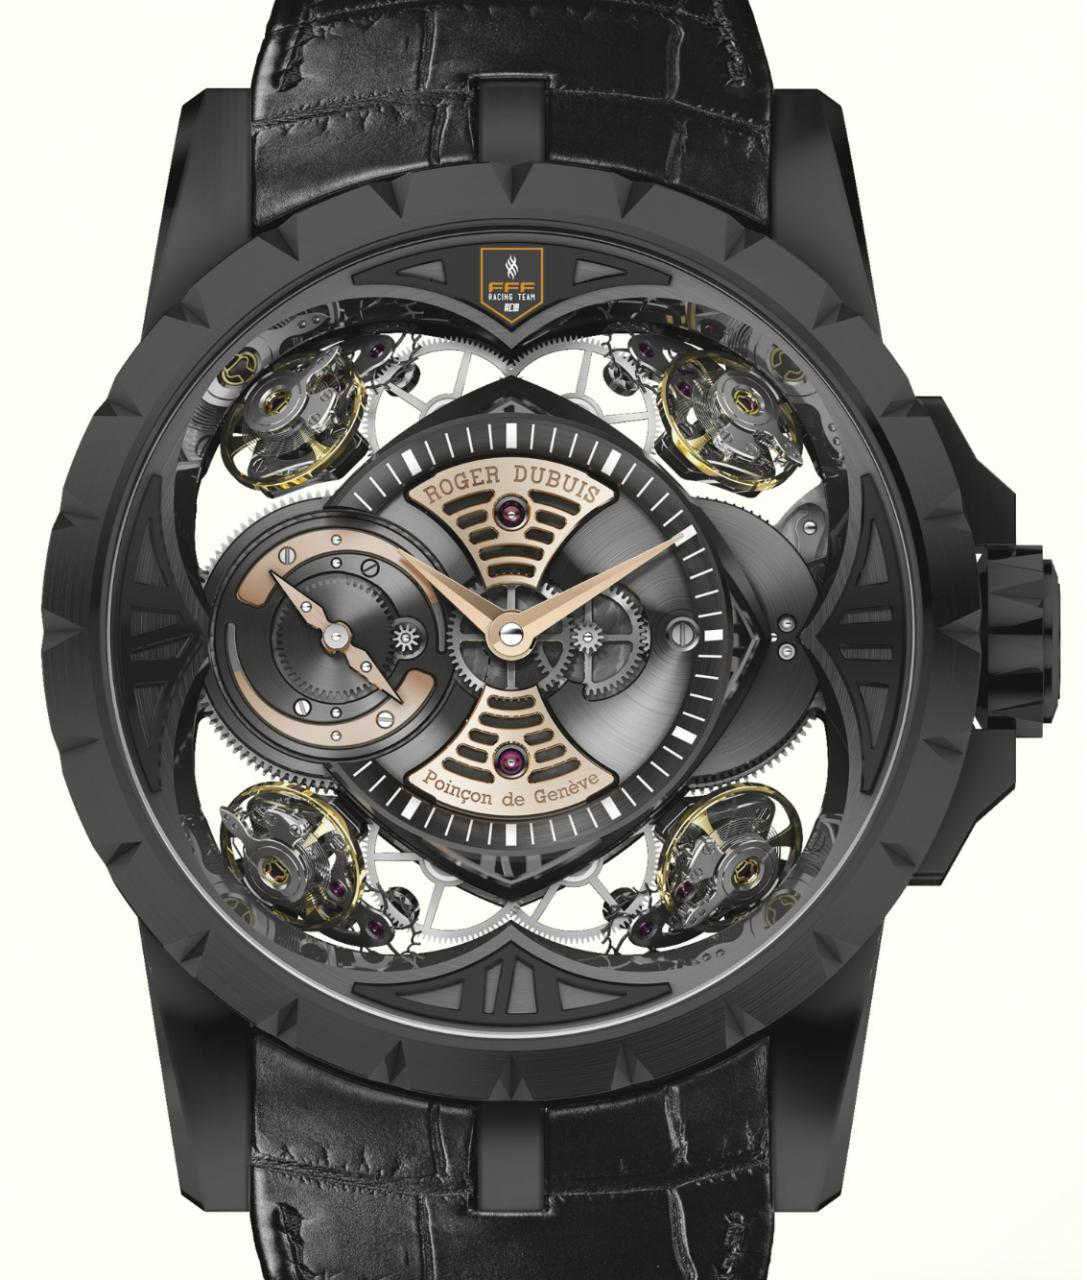 Roger Dubuis Excalibur Quatuor FFF Racing Team Watch Watch Releases